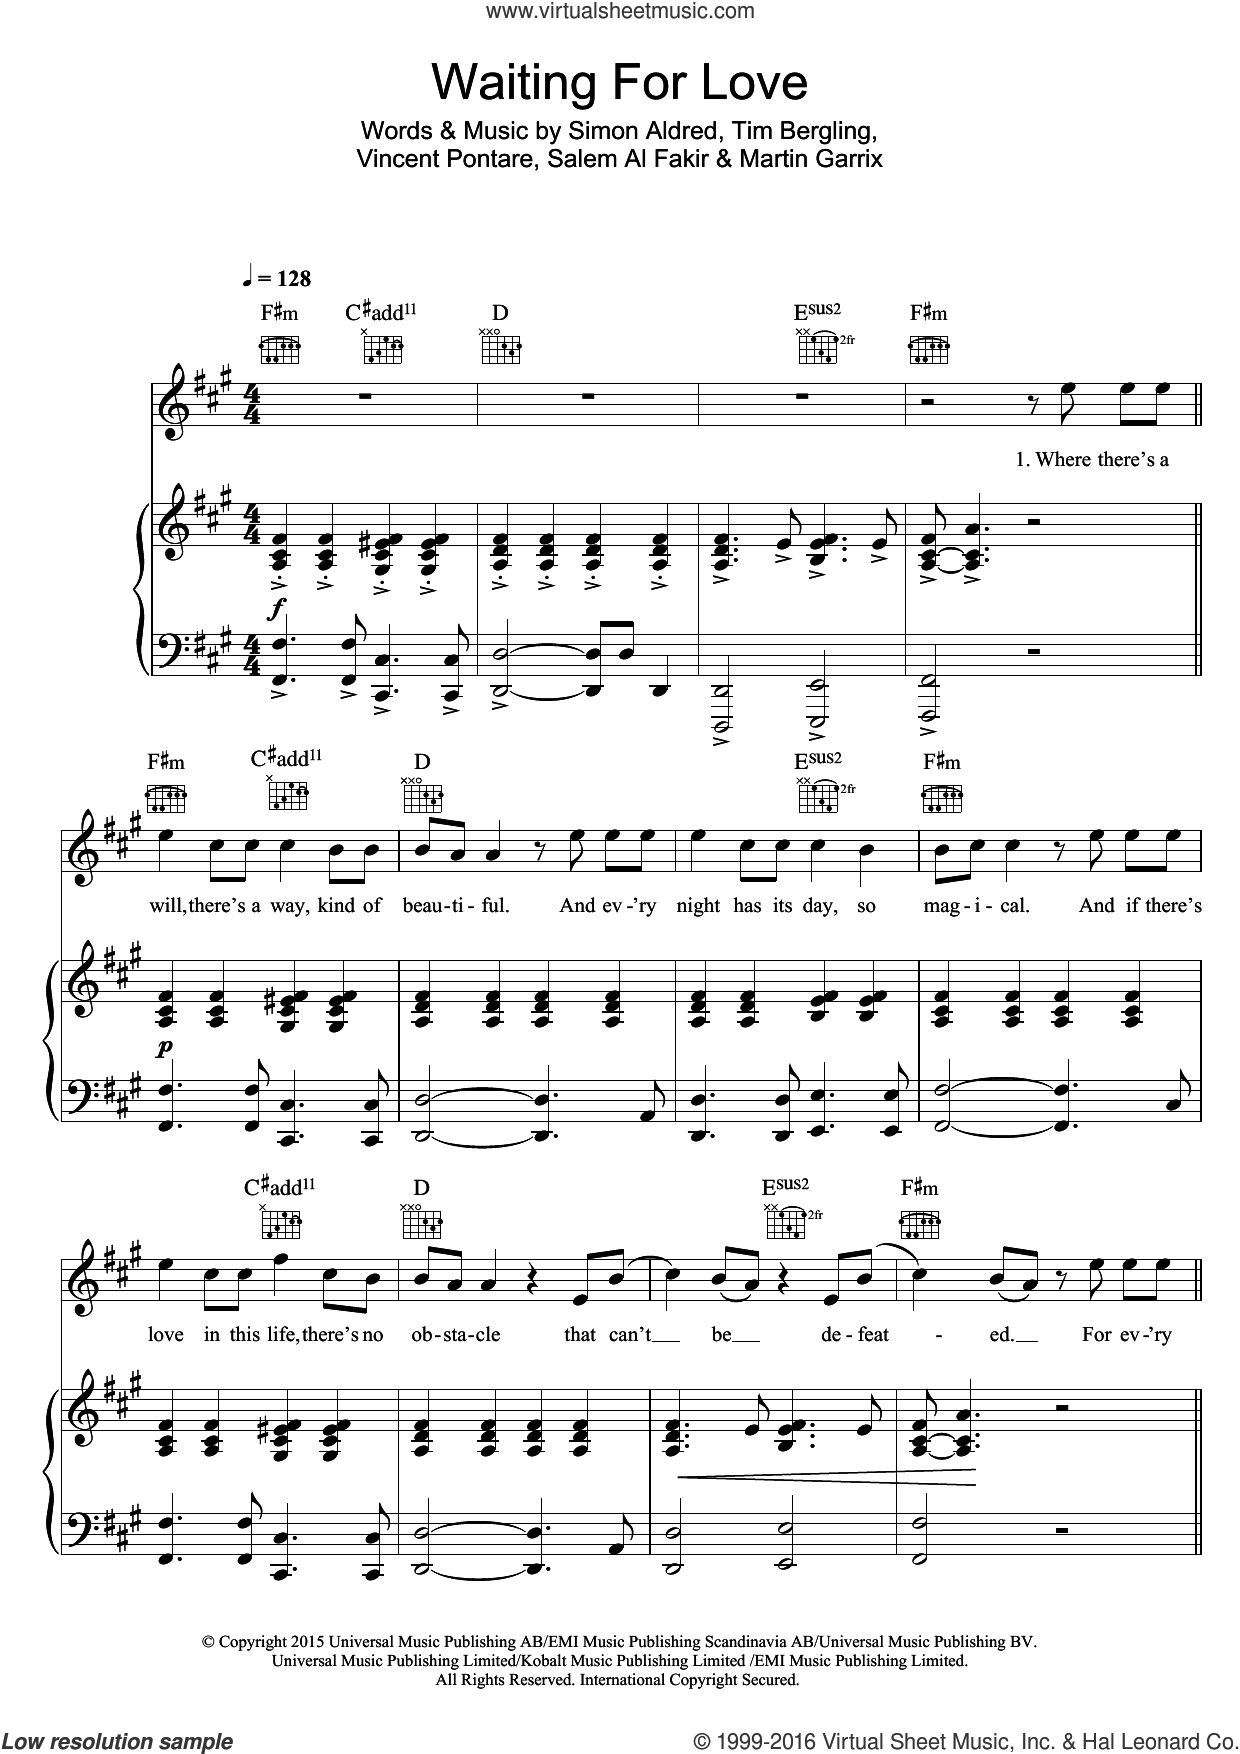 Waiting For Love sheet music for voice, piano or guitar by Avicii, Martin Garrix, Salem Al Fakir, Simon Aldred, Tim Bergling and Vincent Pontare, intermediate